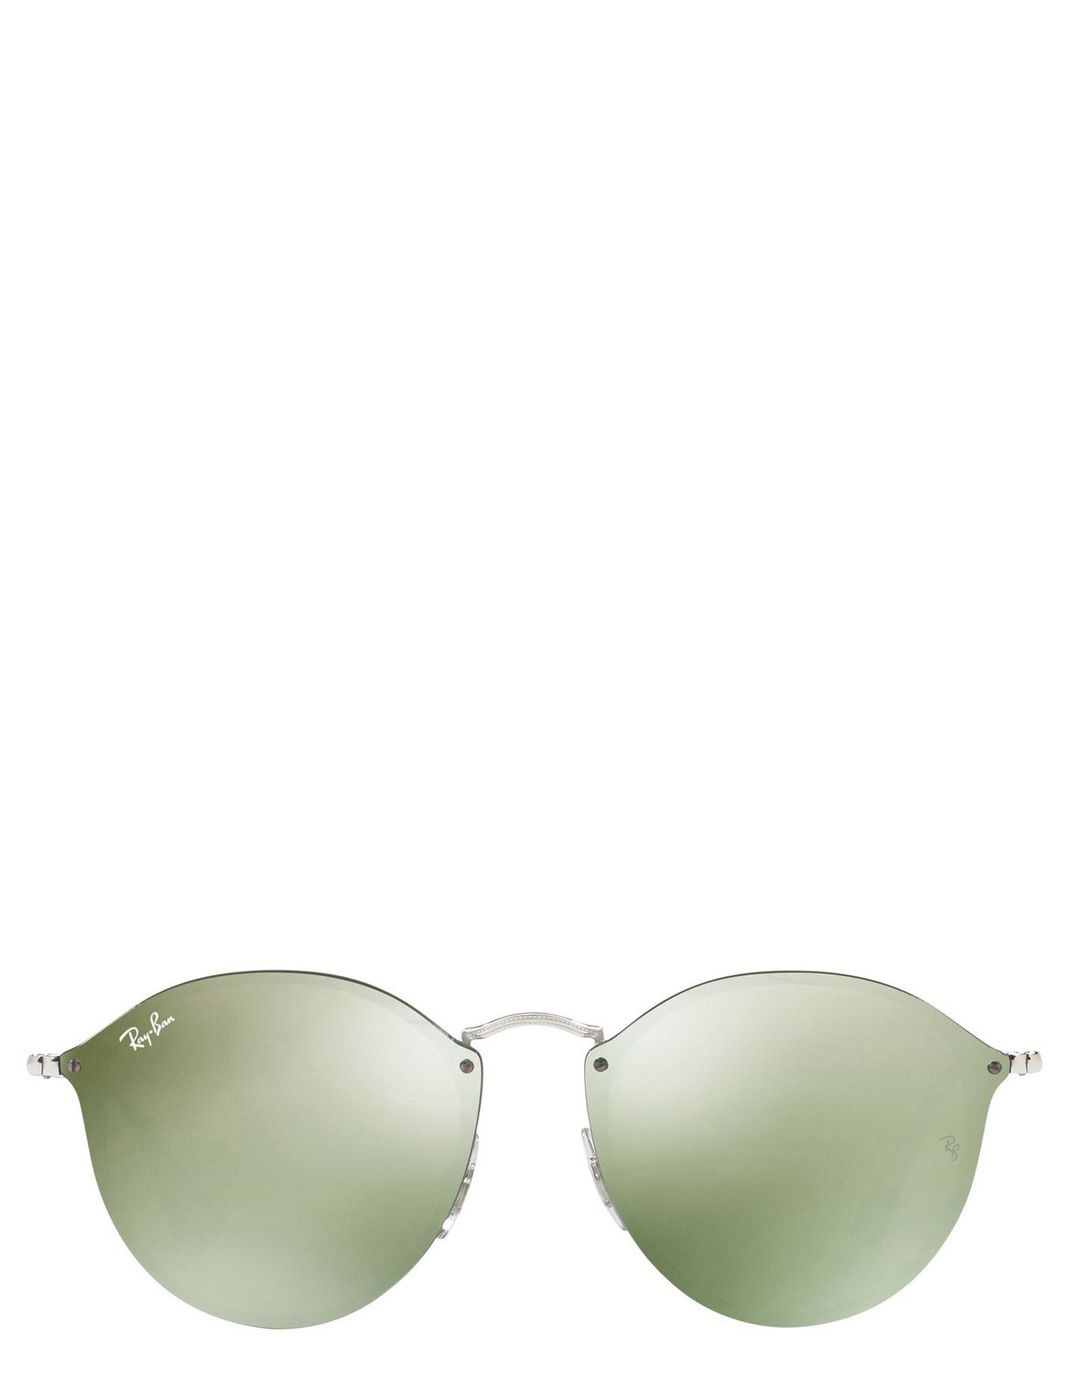 ray ban sunglasses sale myer